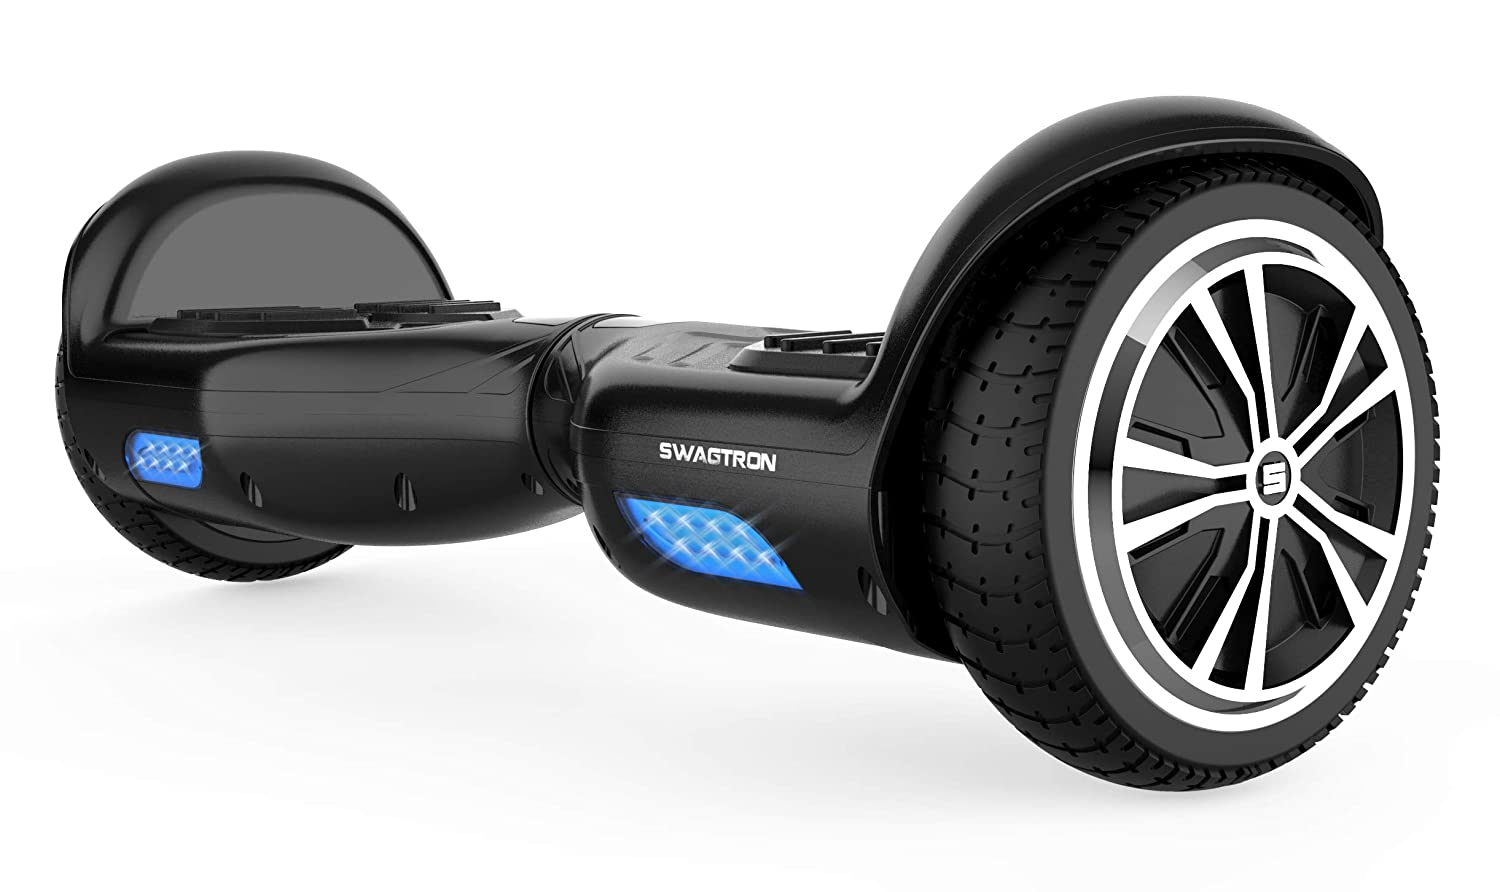 SWAGTRON T881 HOVERBOARD REVIEW